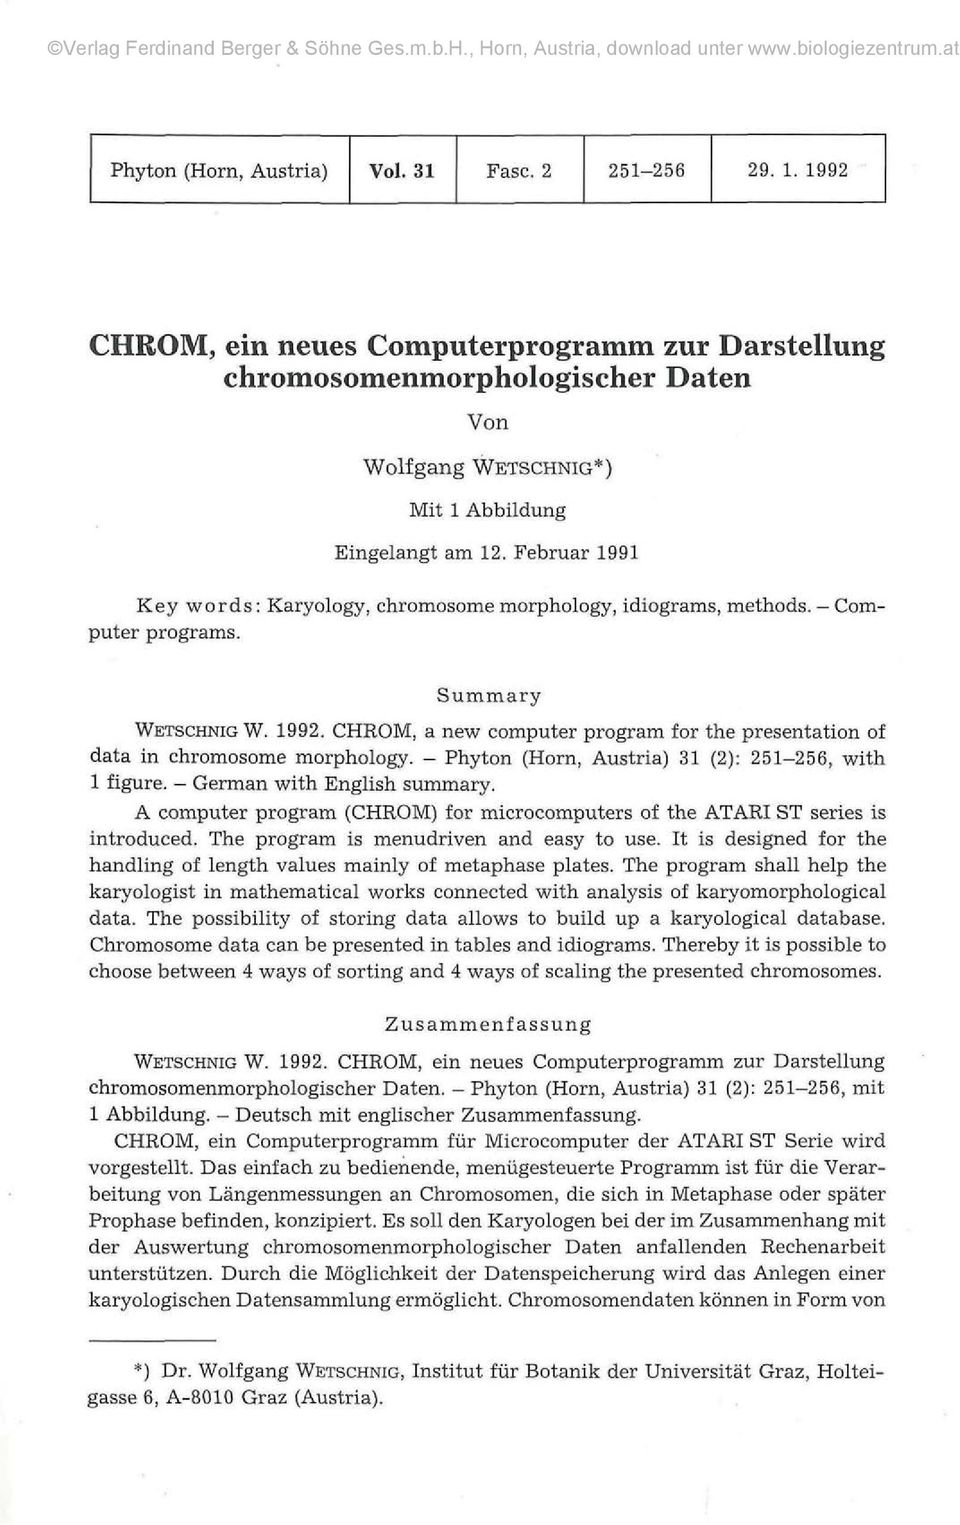 CHROM, a new computer program for the presentation of data in chromosome morphology. Phyton (Horn, Austria) 31 (2): 251256, with 1 figure. German with English summary.